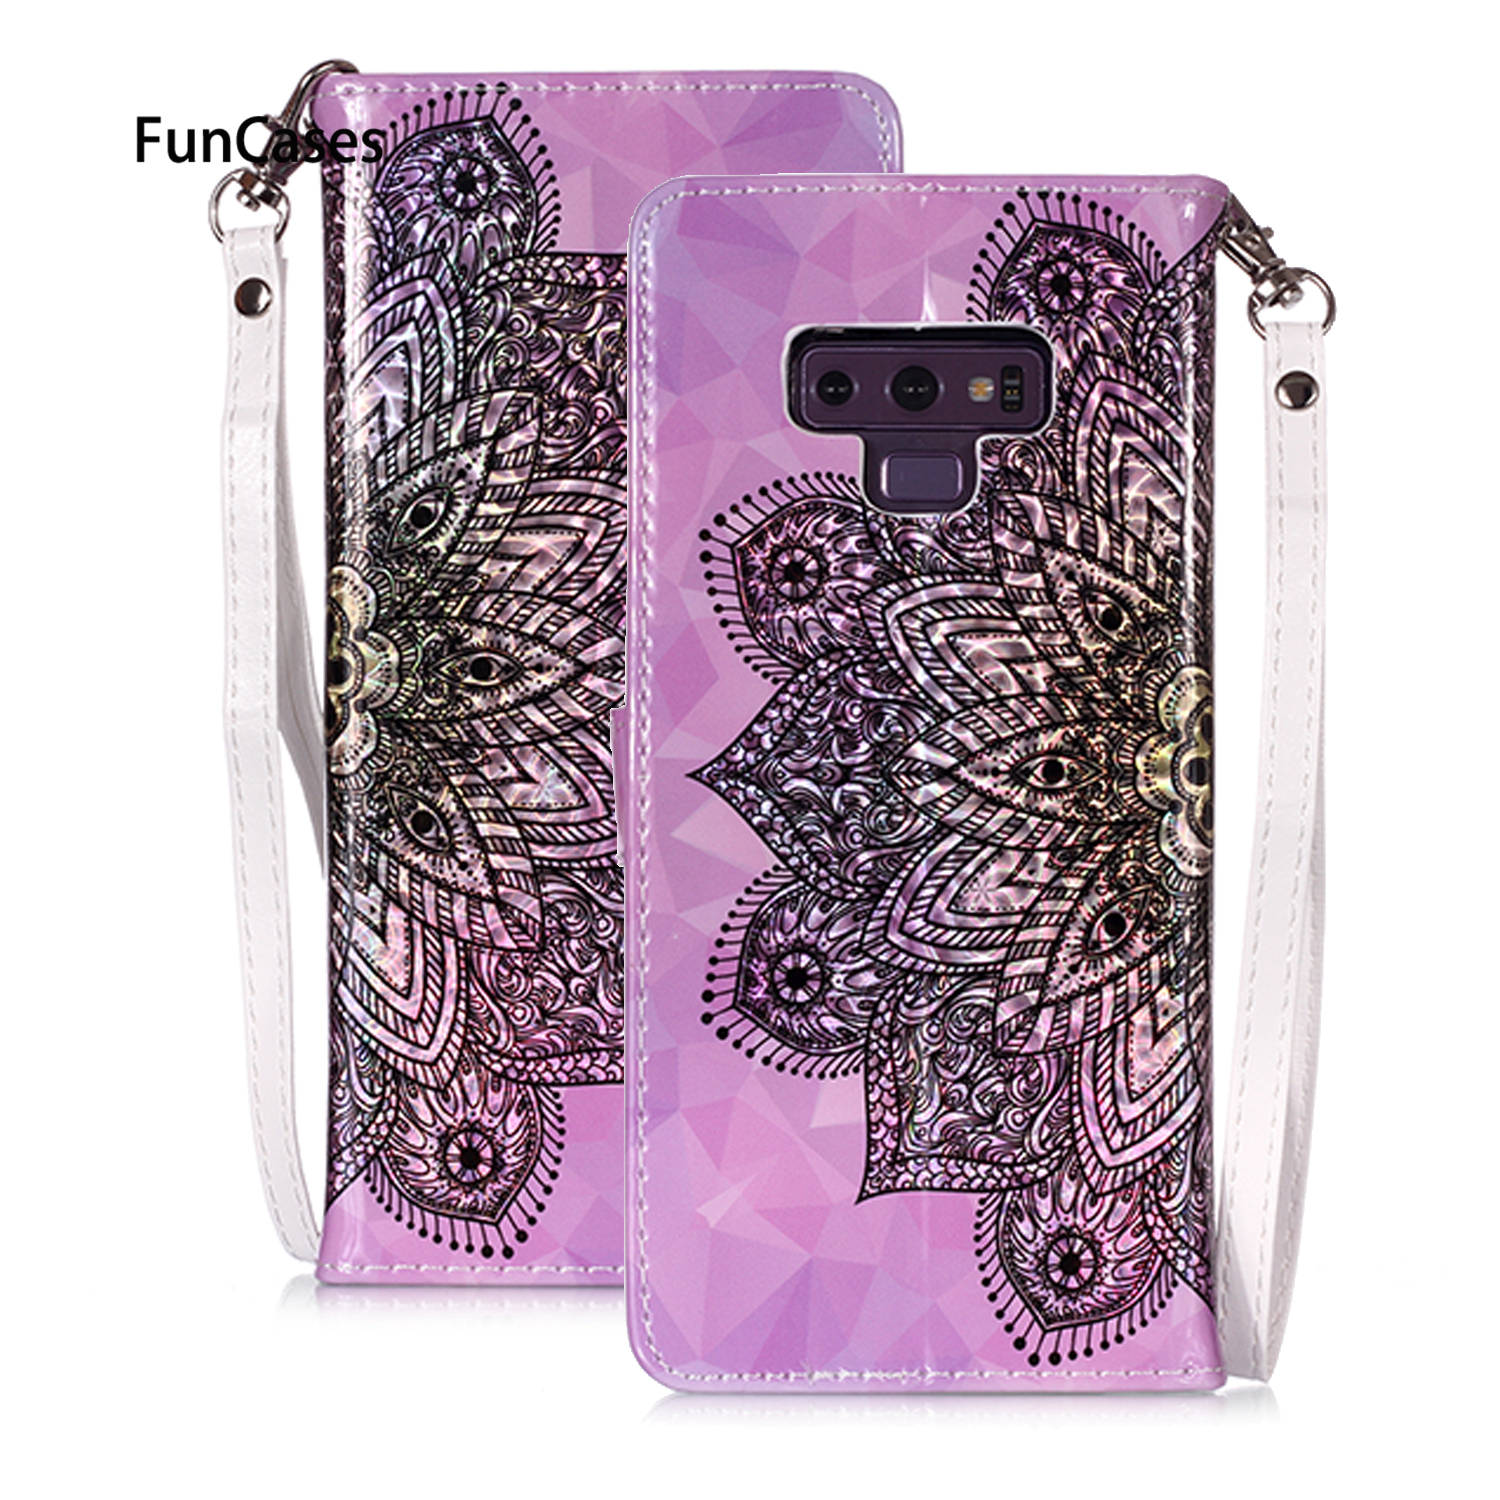 Cases For Galaxy Note 8 Case Samsung A750 A60 J6 Plus 10 A70 M20 M30 A6 2018 A10 M10 A8 J330 J530 A50 A20 A7 A20E J4 A40 A30 9